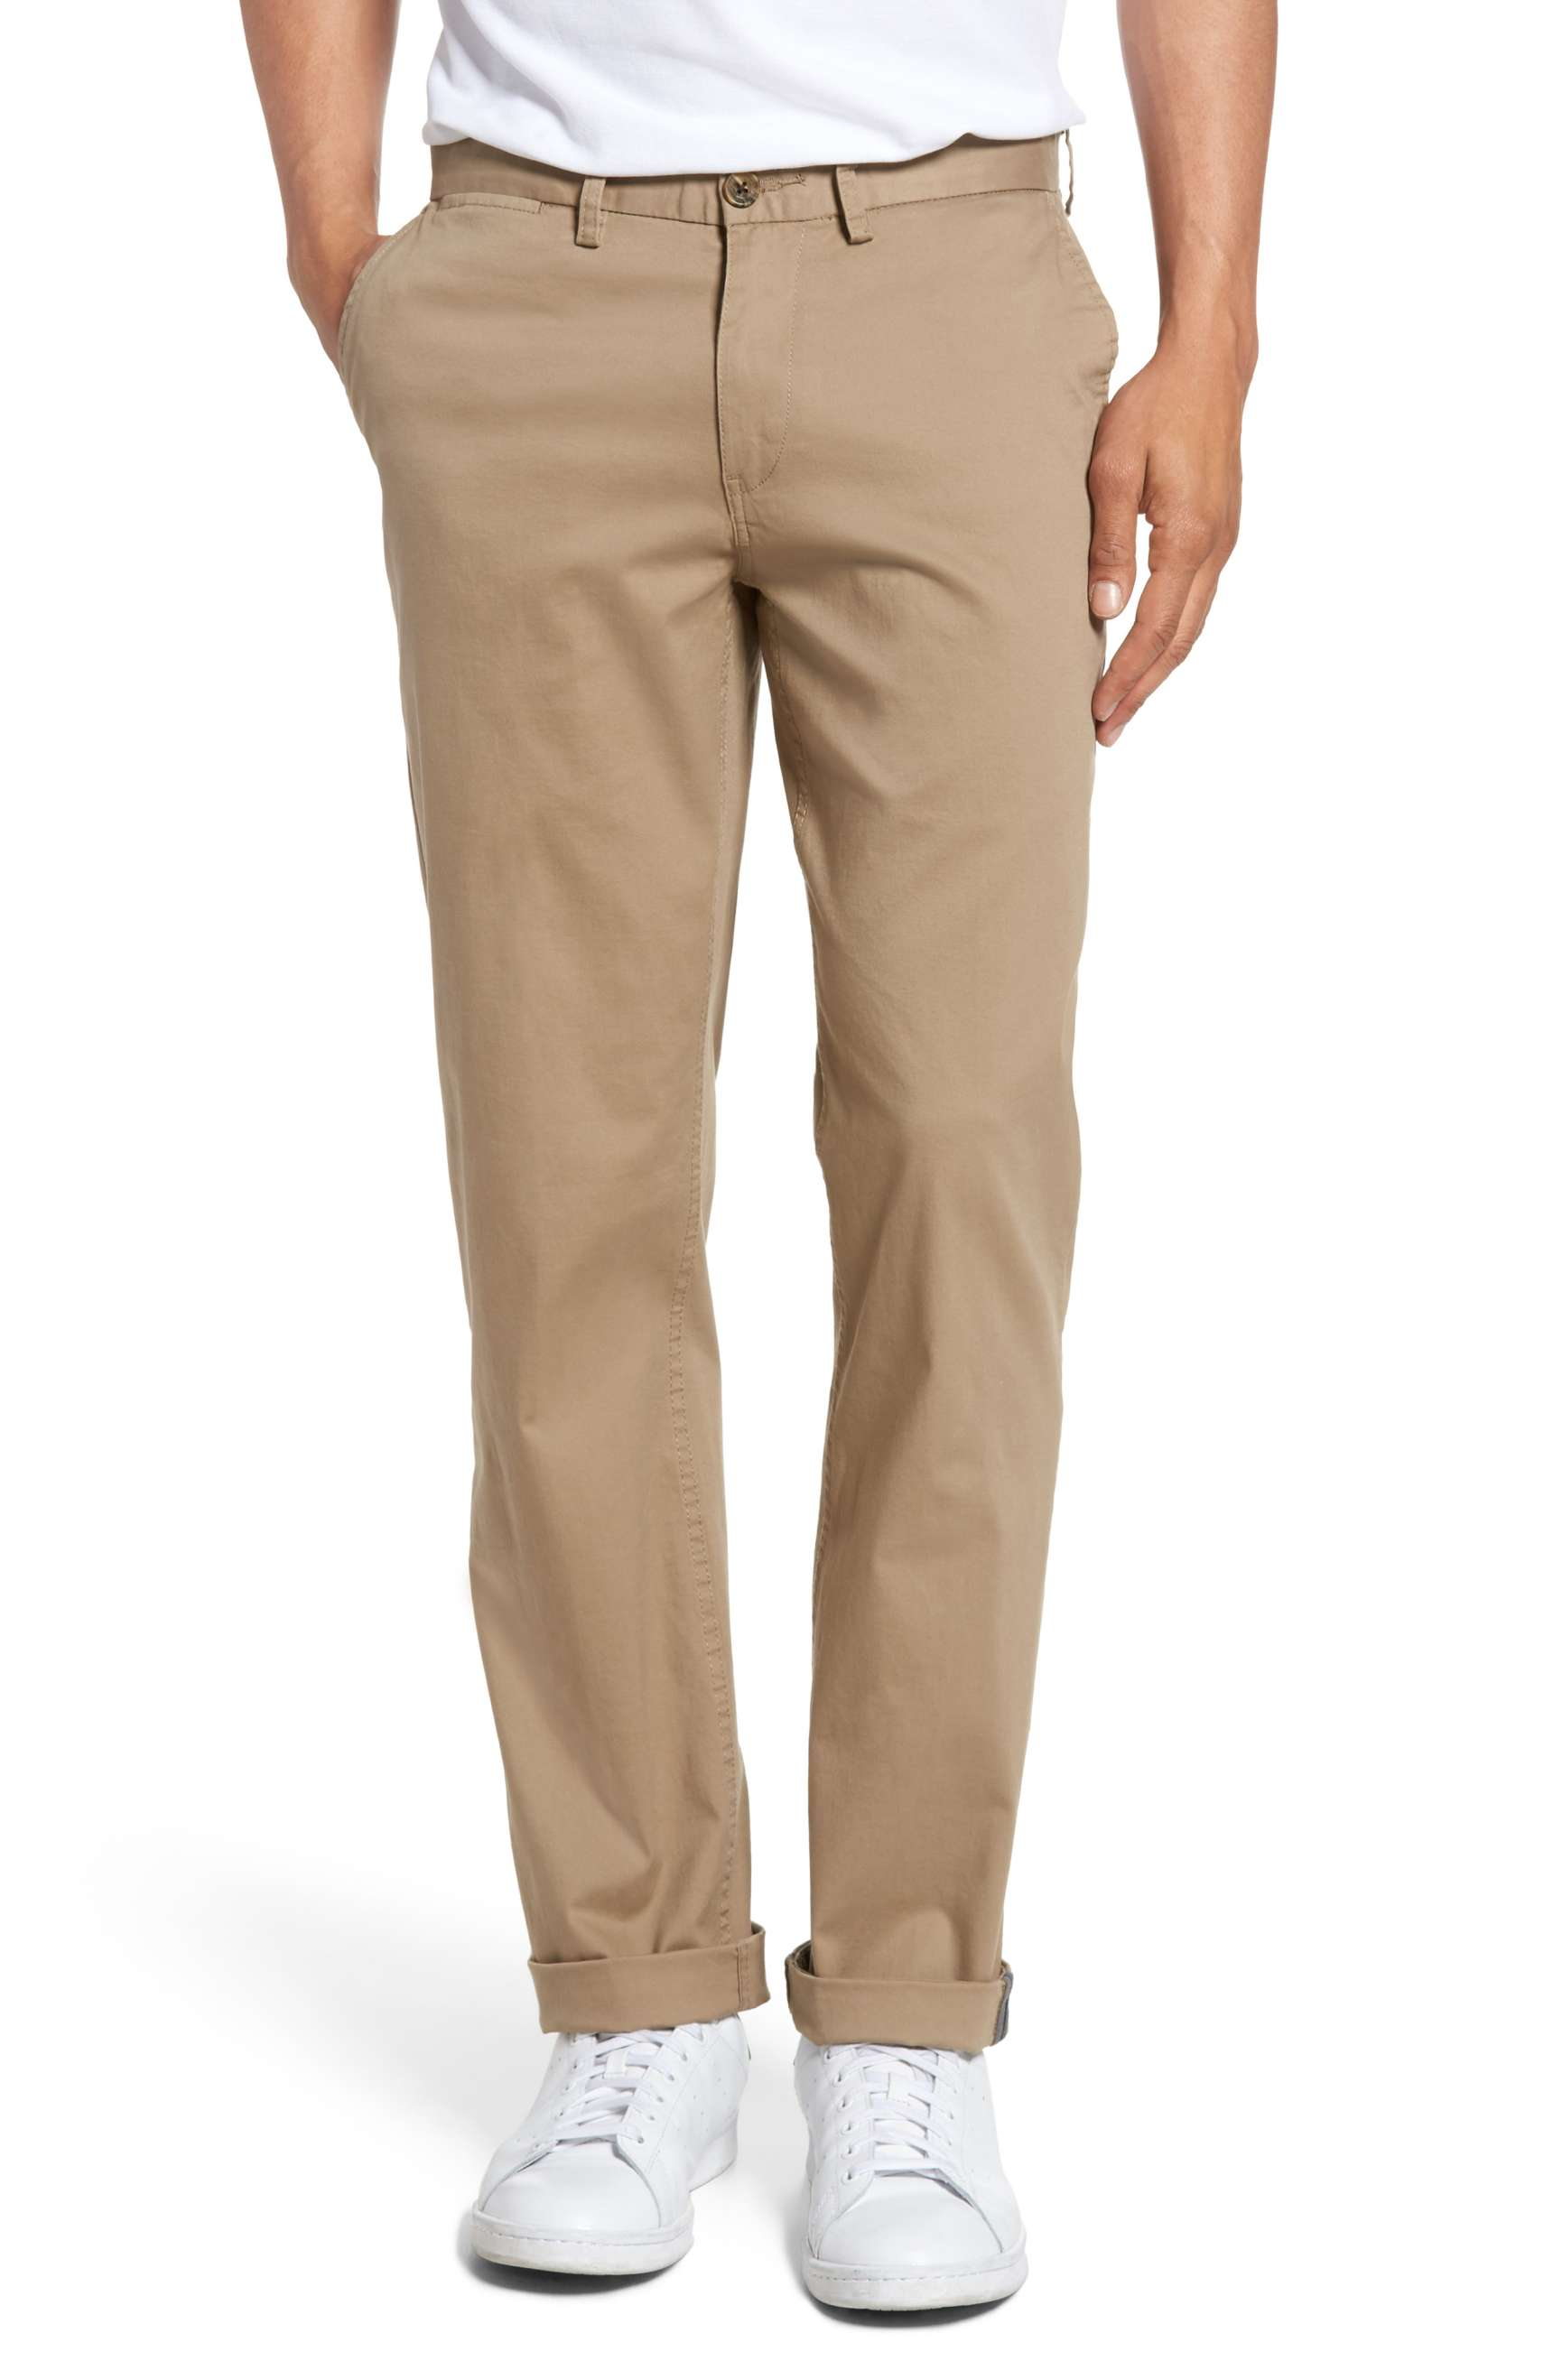 mens chinos ben sherman light stone khaki chinos - buy it here for $79 gozfylq